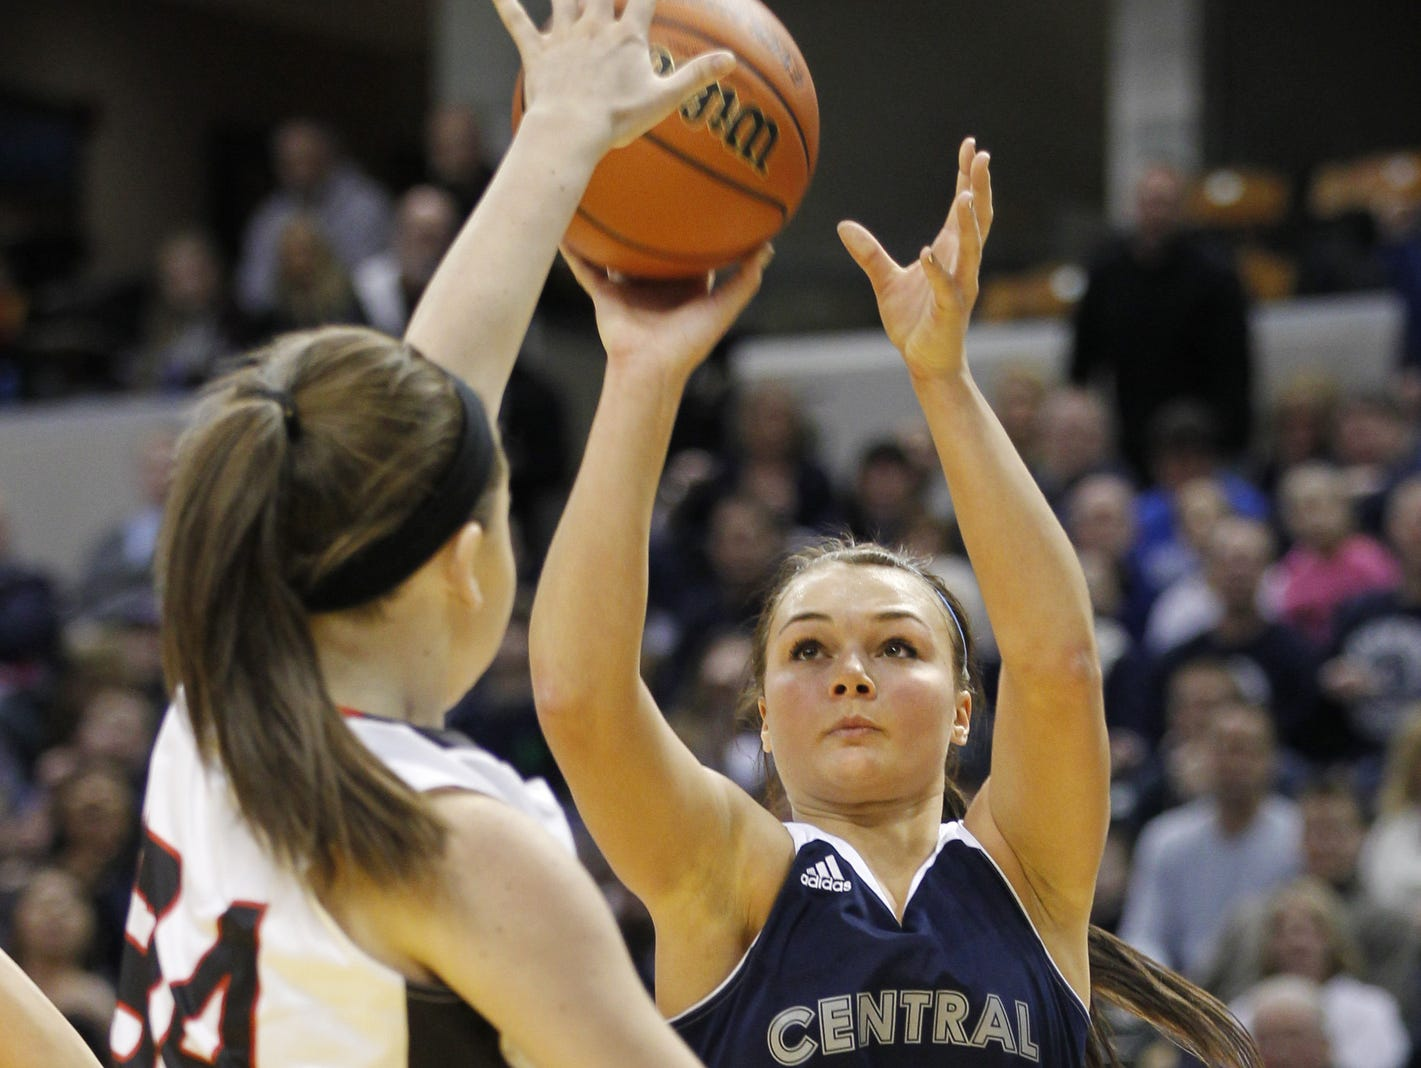 Emily Burks with a three-point shot over Meagan Knepp of Barr-Reeve in the Girls Class A Basketball State Final Saturday, March 7, 2015, at Bankers Life Fieldhouse in Indianapolis. CC defeated Barr-Reeve 52-44.